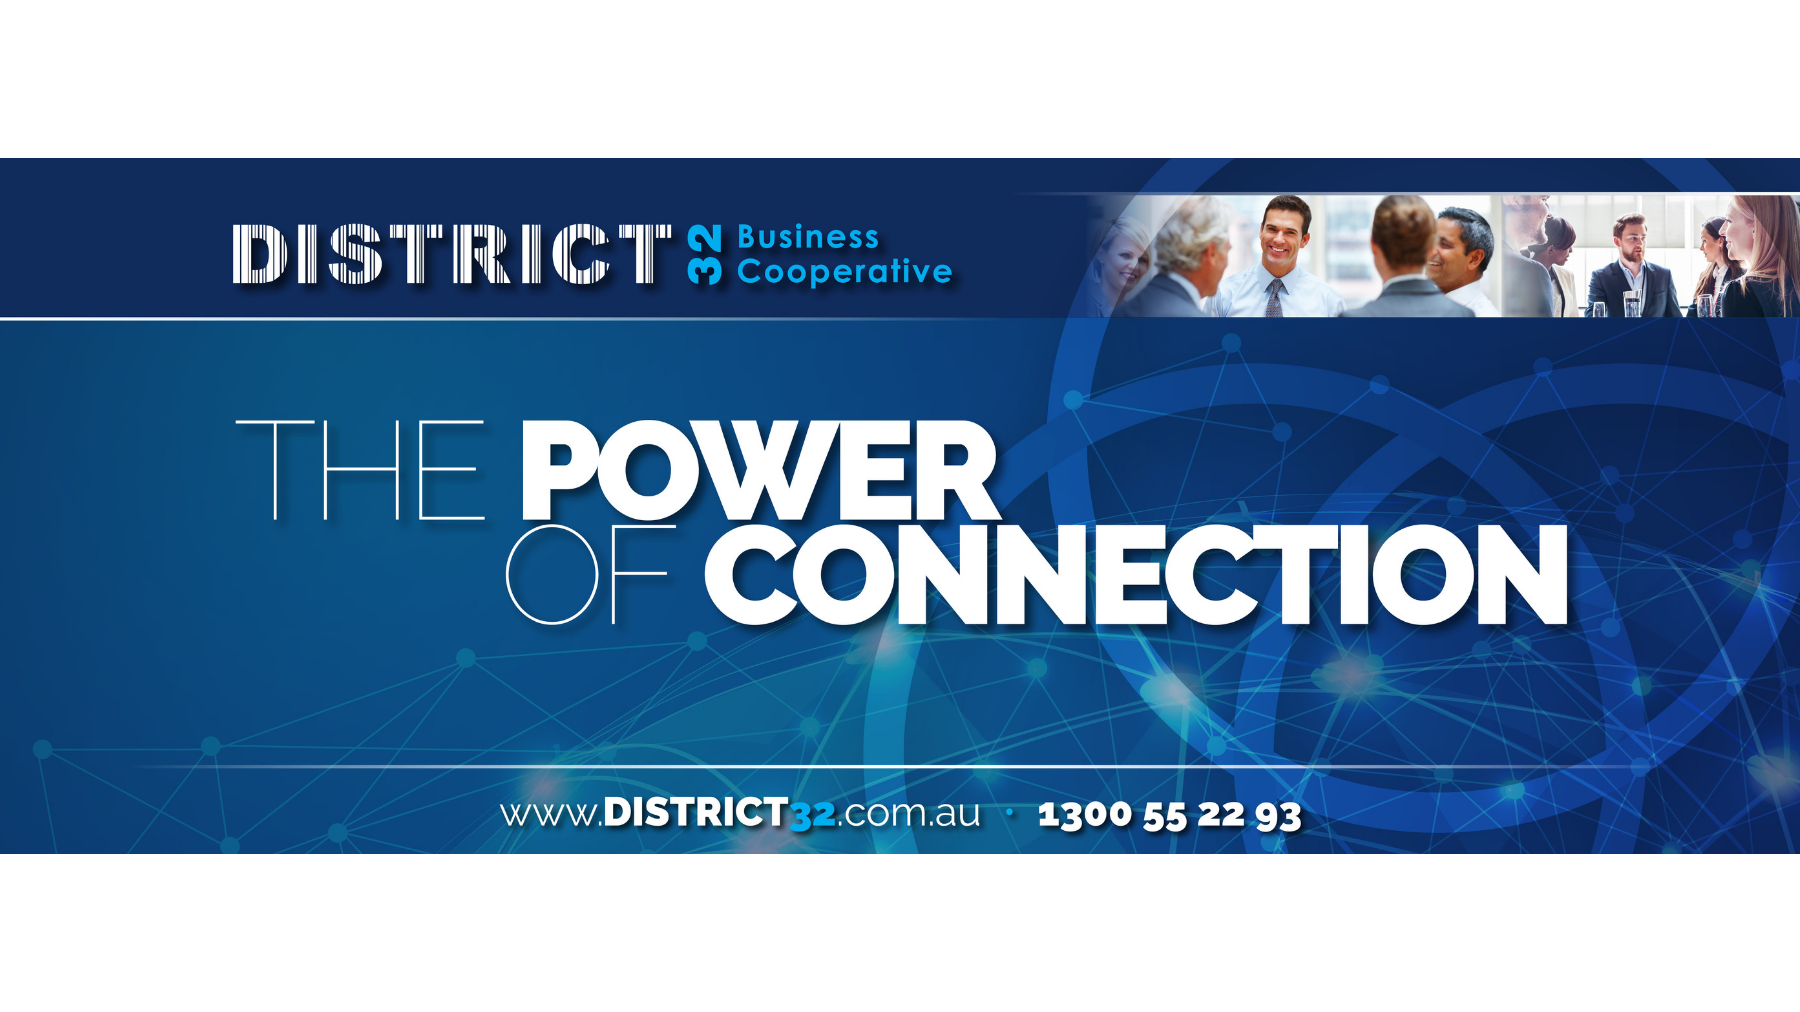 District32 Business Networking